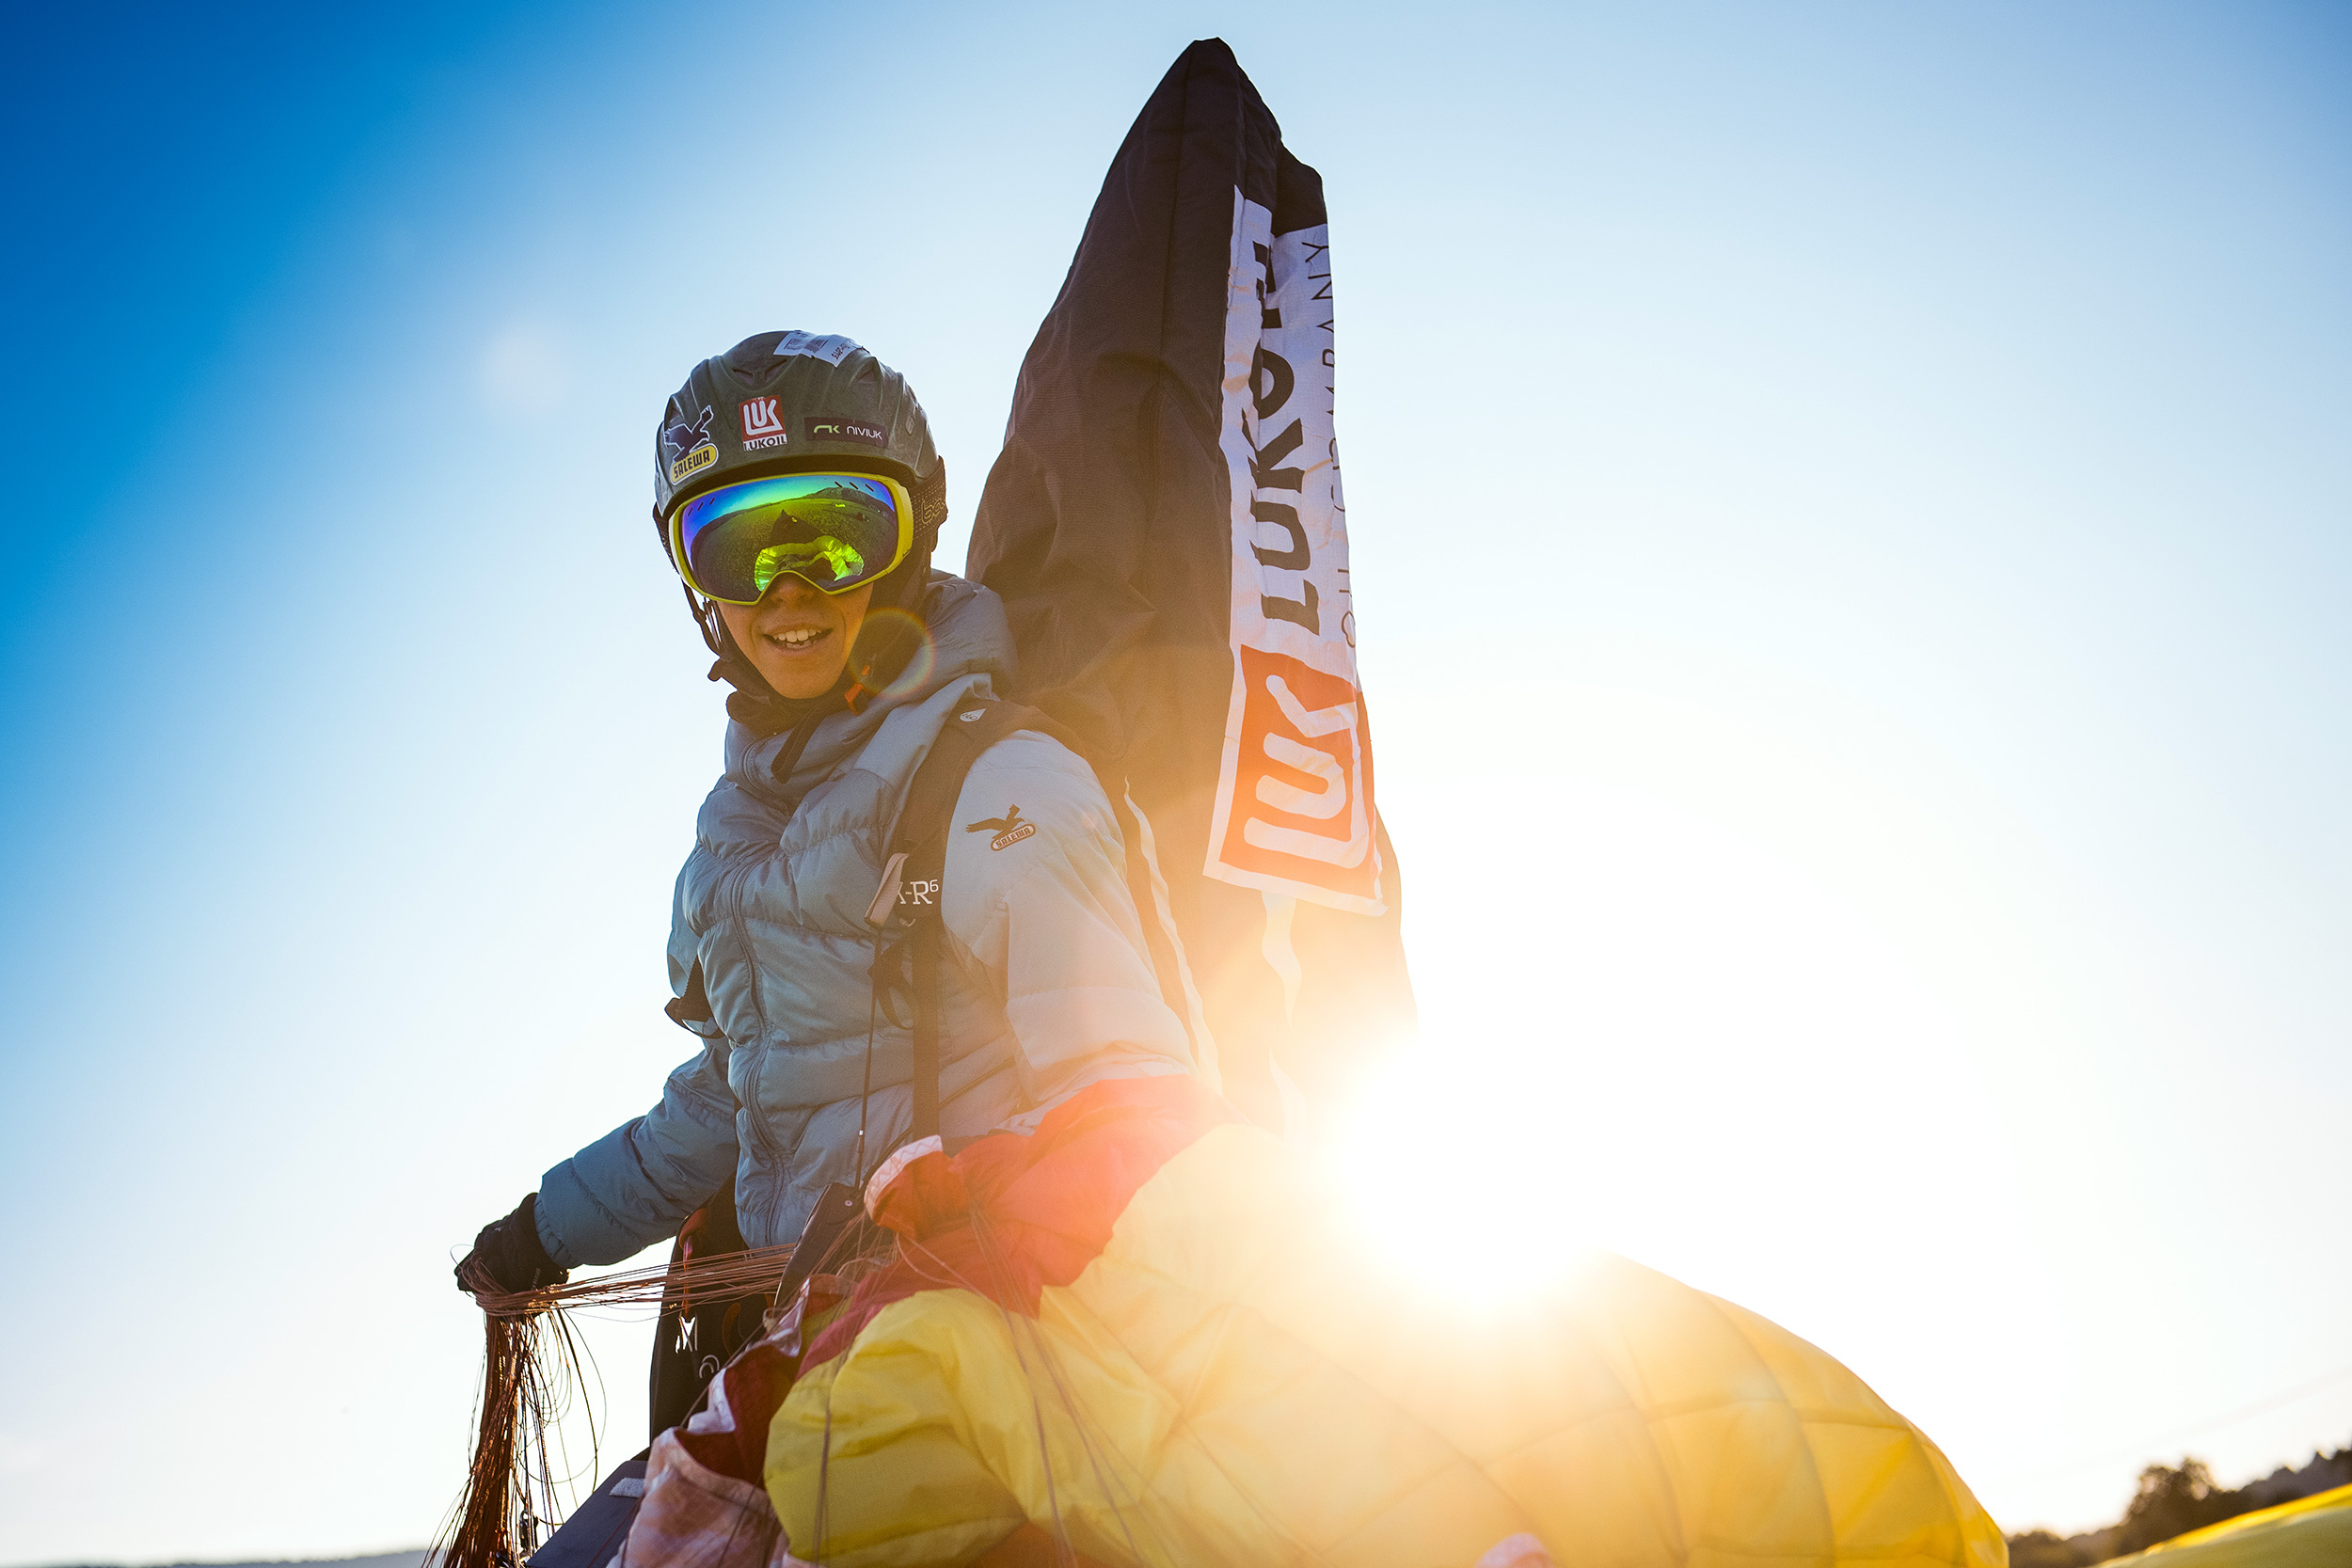 Klaudia Bulgakow: Profile of a Top Female Paragliding Pilot